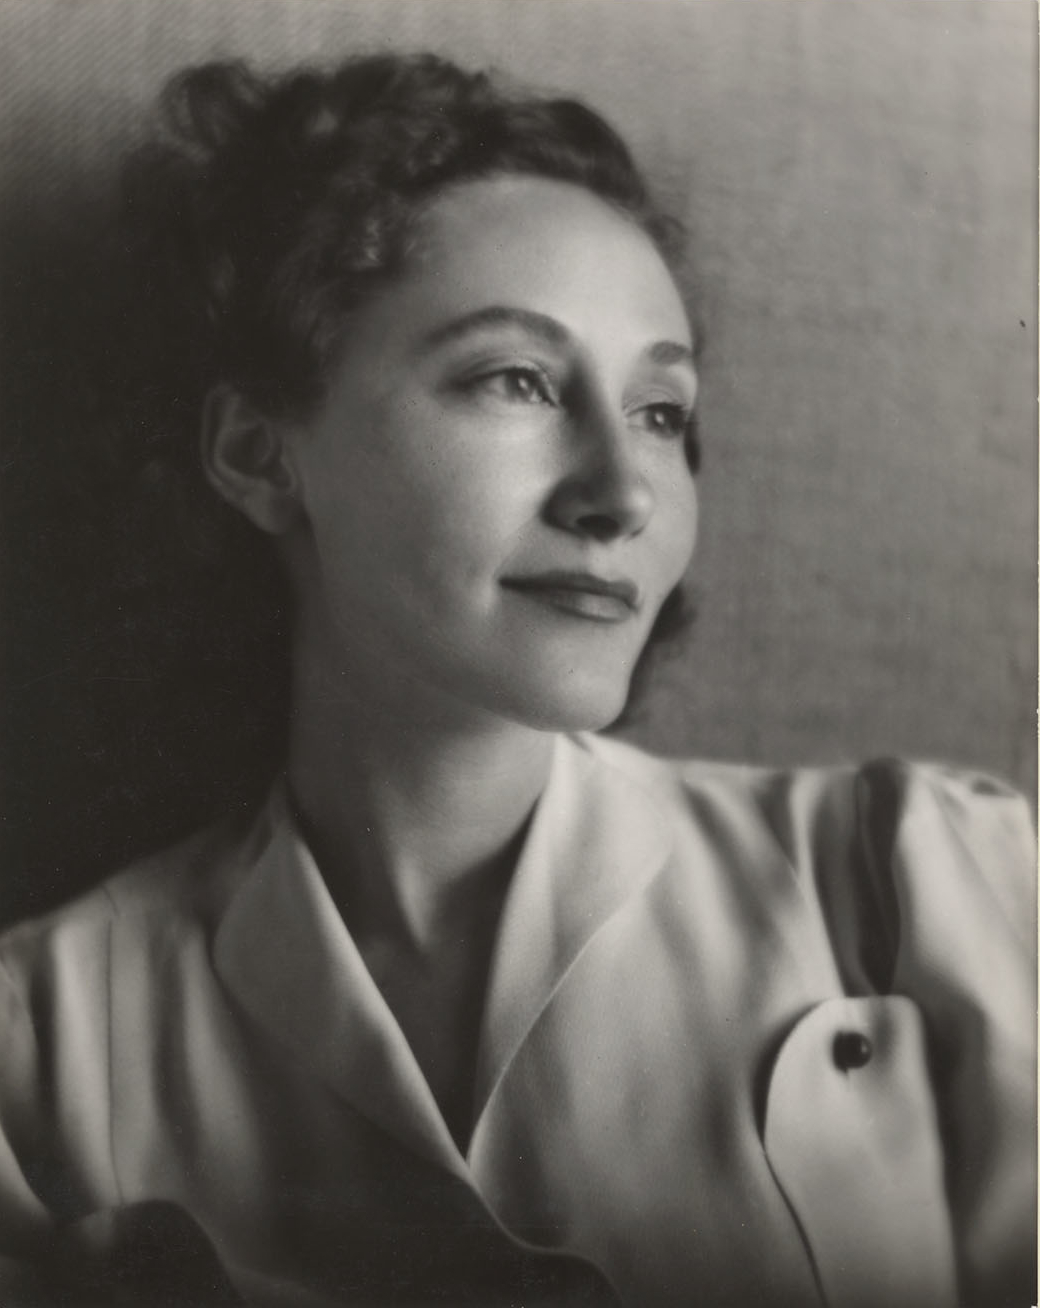 Polly Connell by Johan Hagemeyer, photographer Date: May 10, 1941   Contributing Institution: UC Berkeley, Bancroft Library